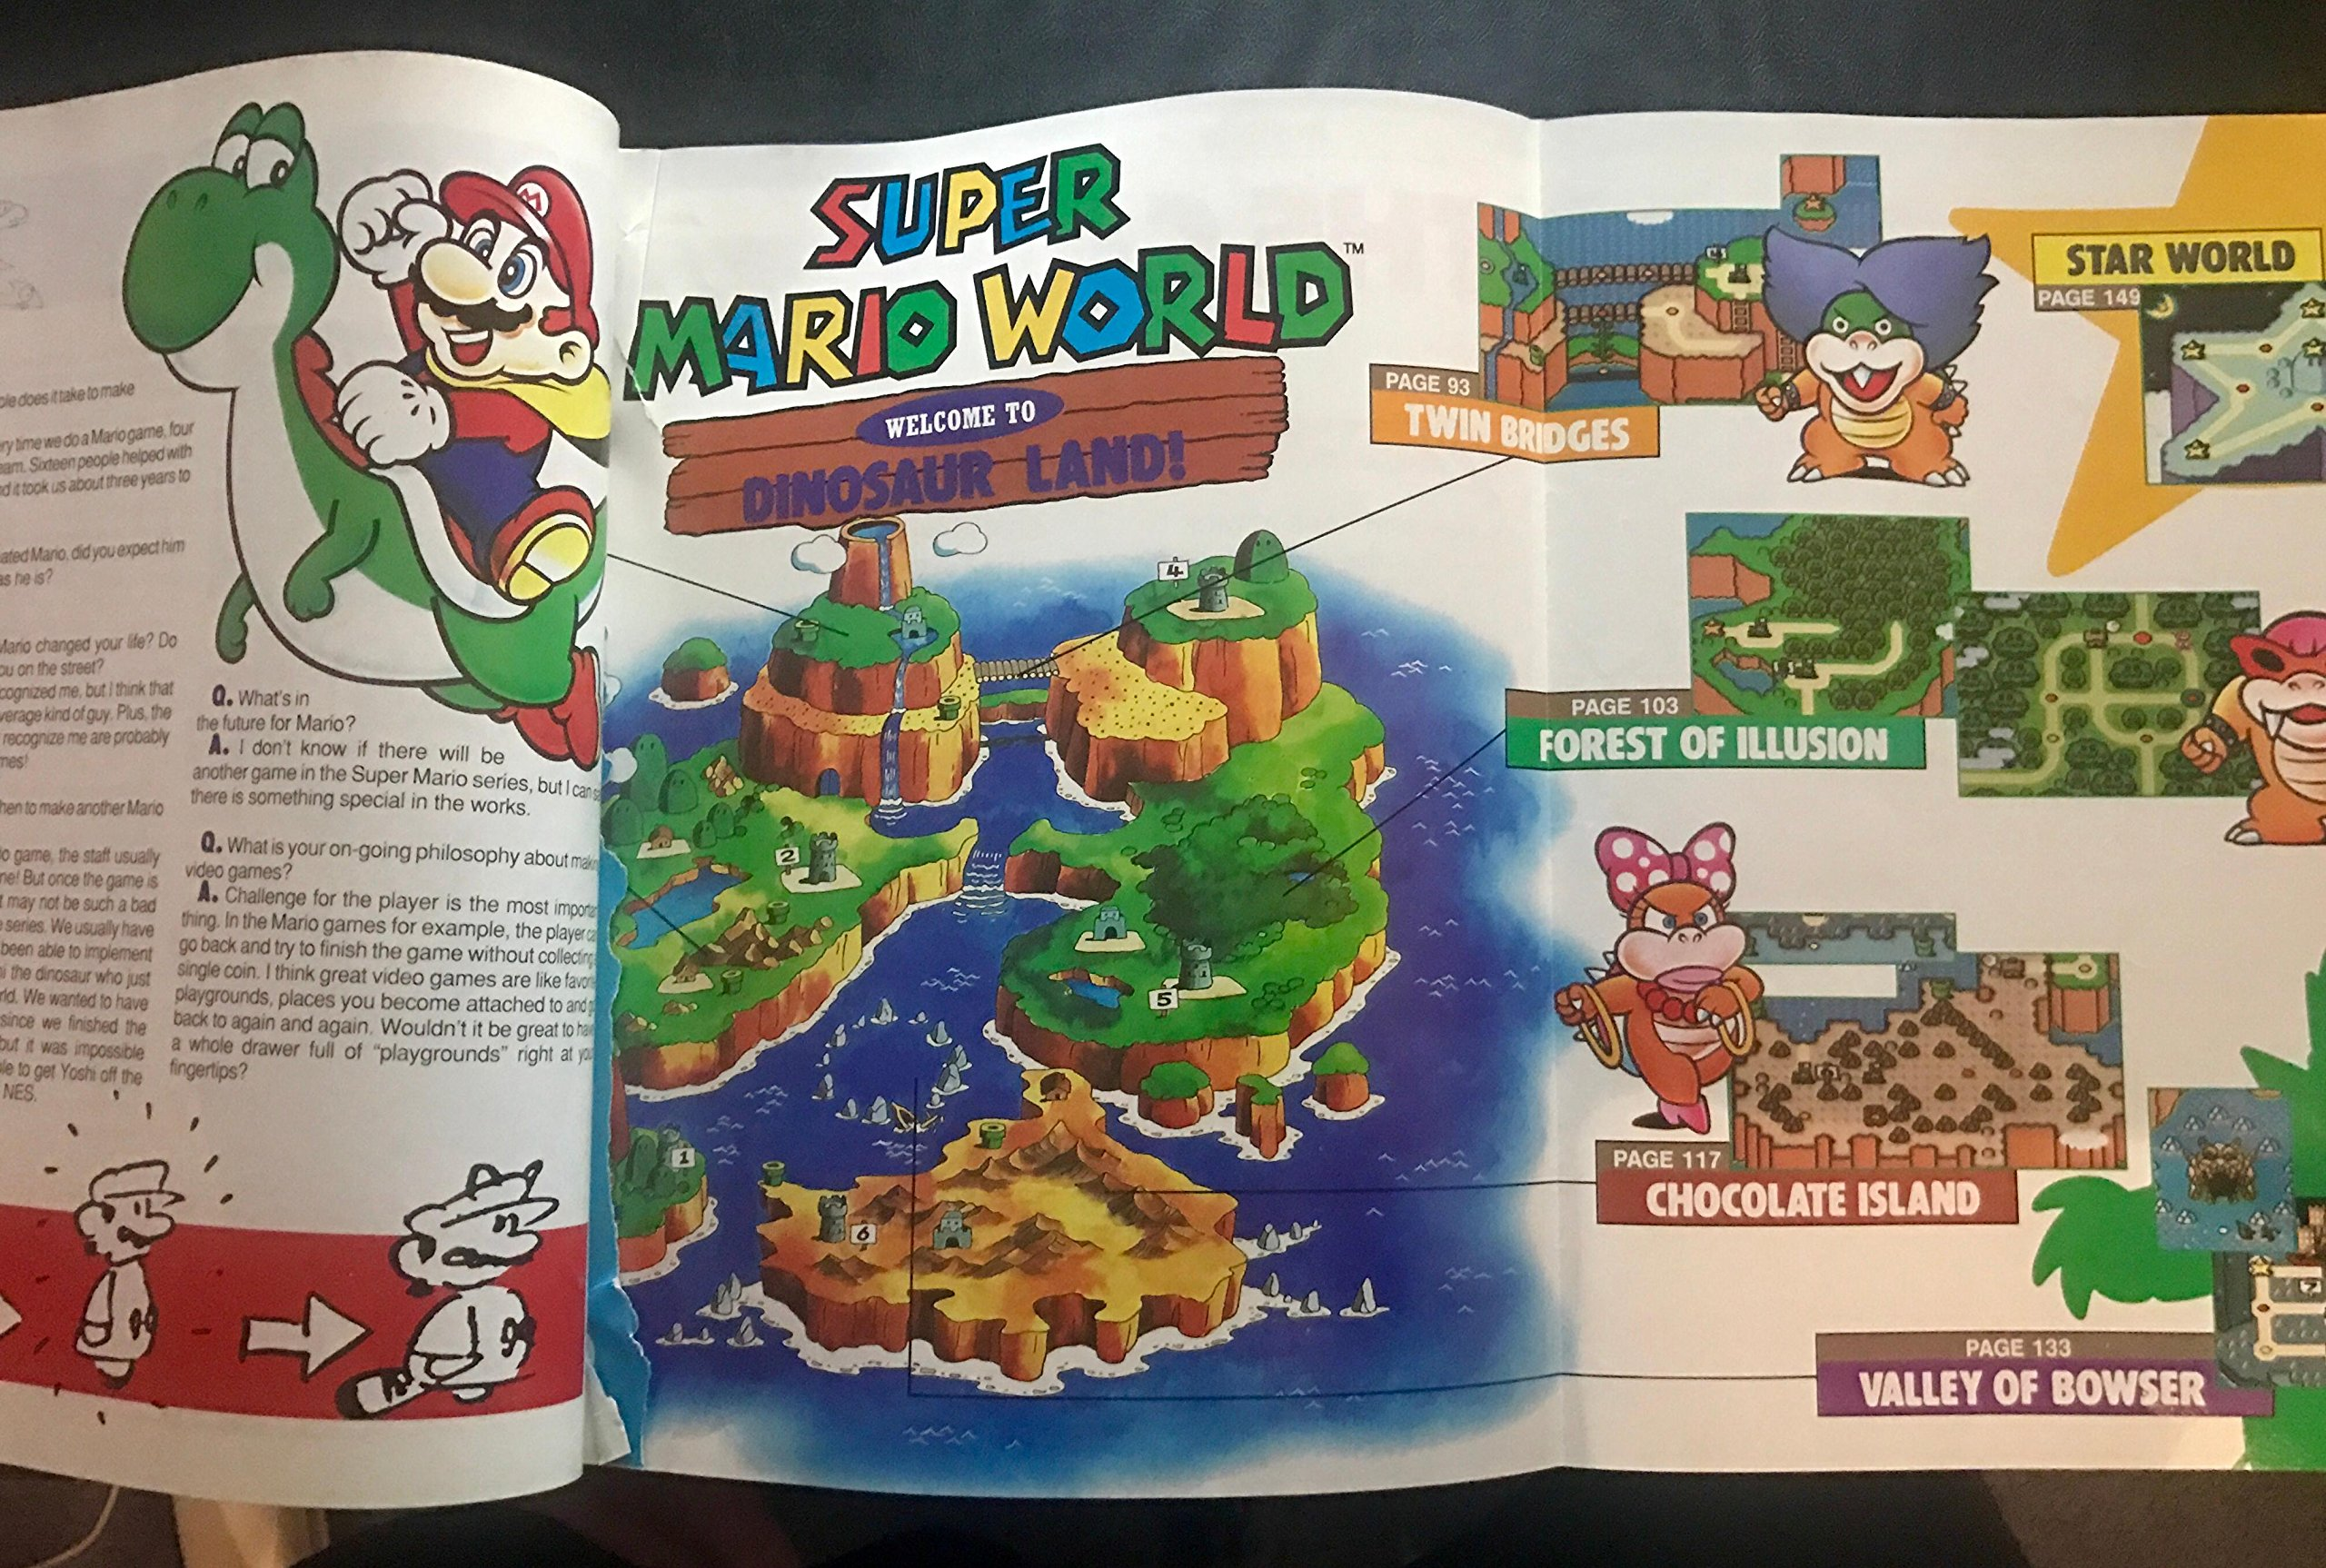 Mario mania super mario world nintendo players strategy guide m mario mania super mario world nintendo players strategy guide m arakawa amazon books gumiabroncs Gallery